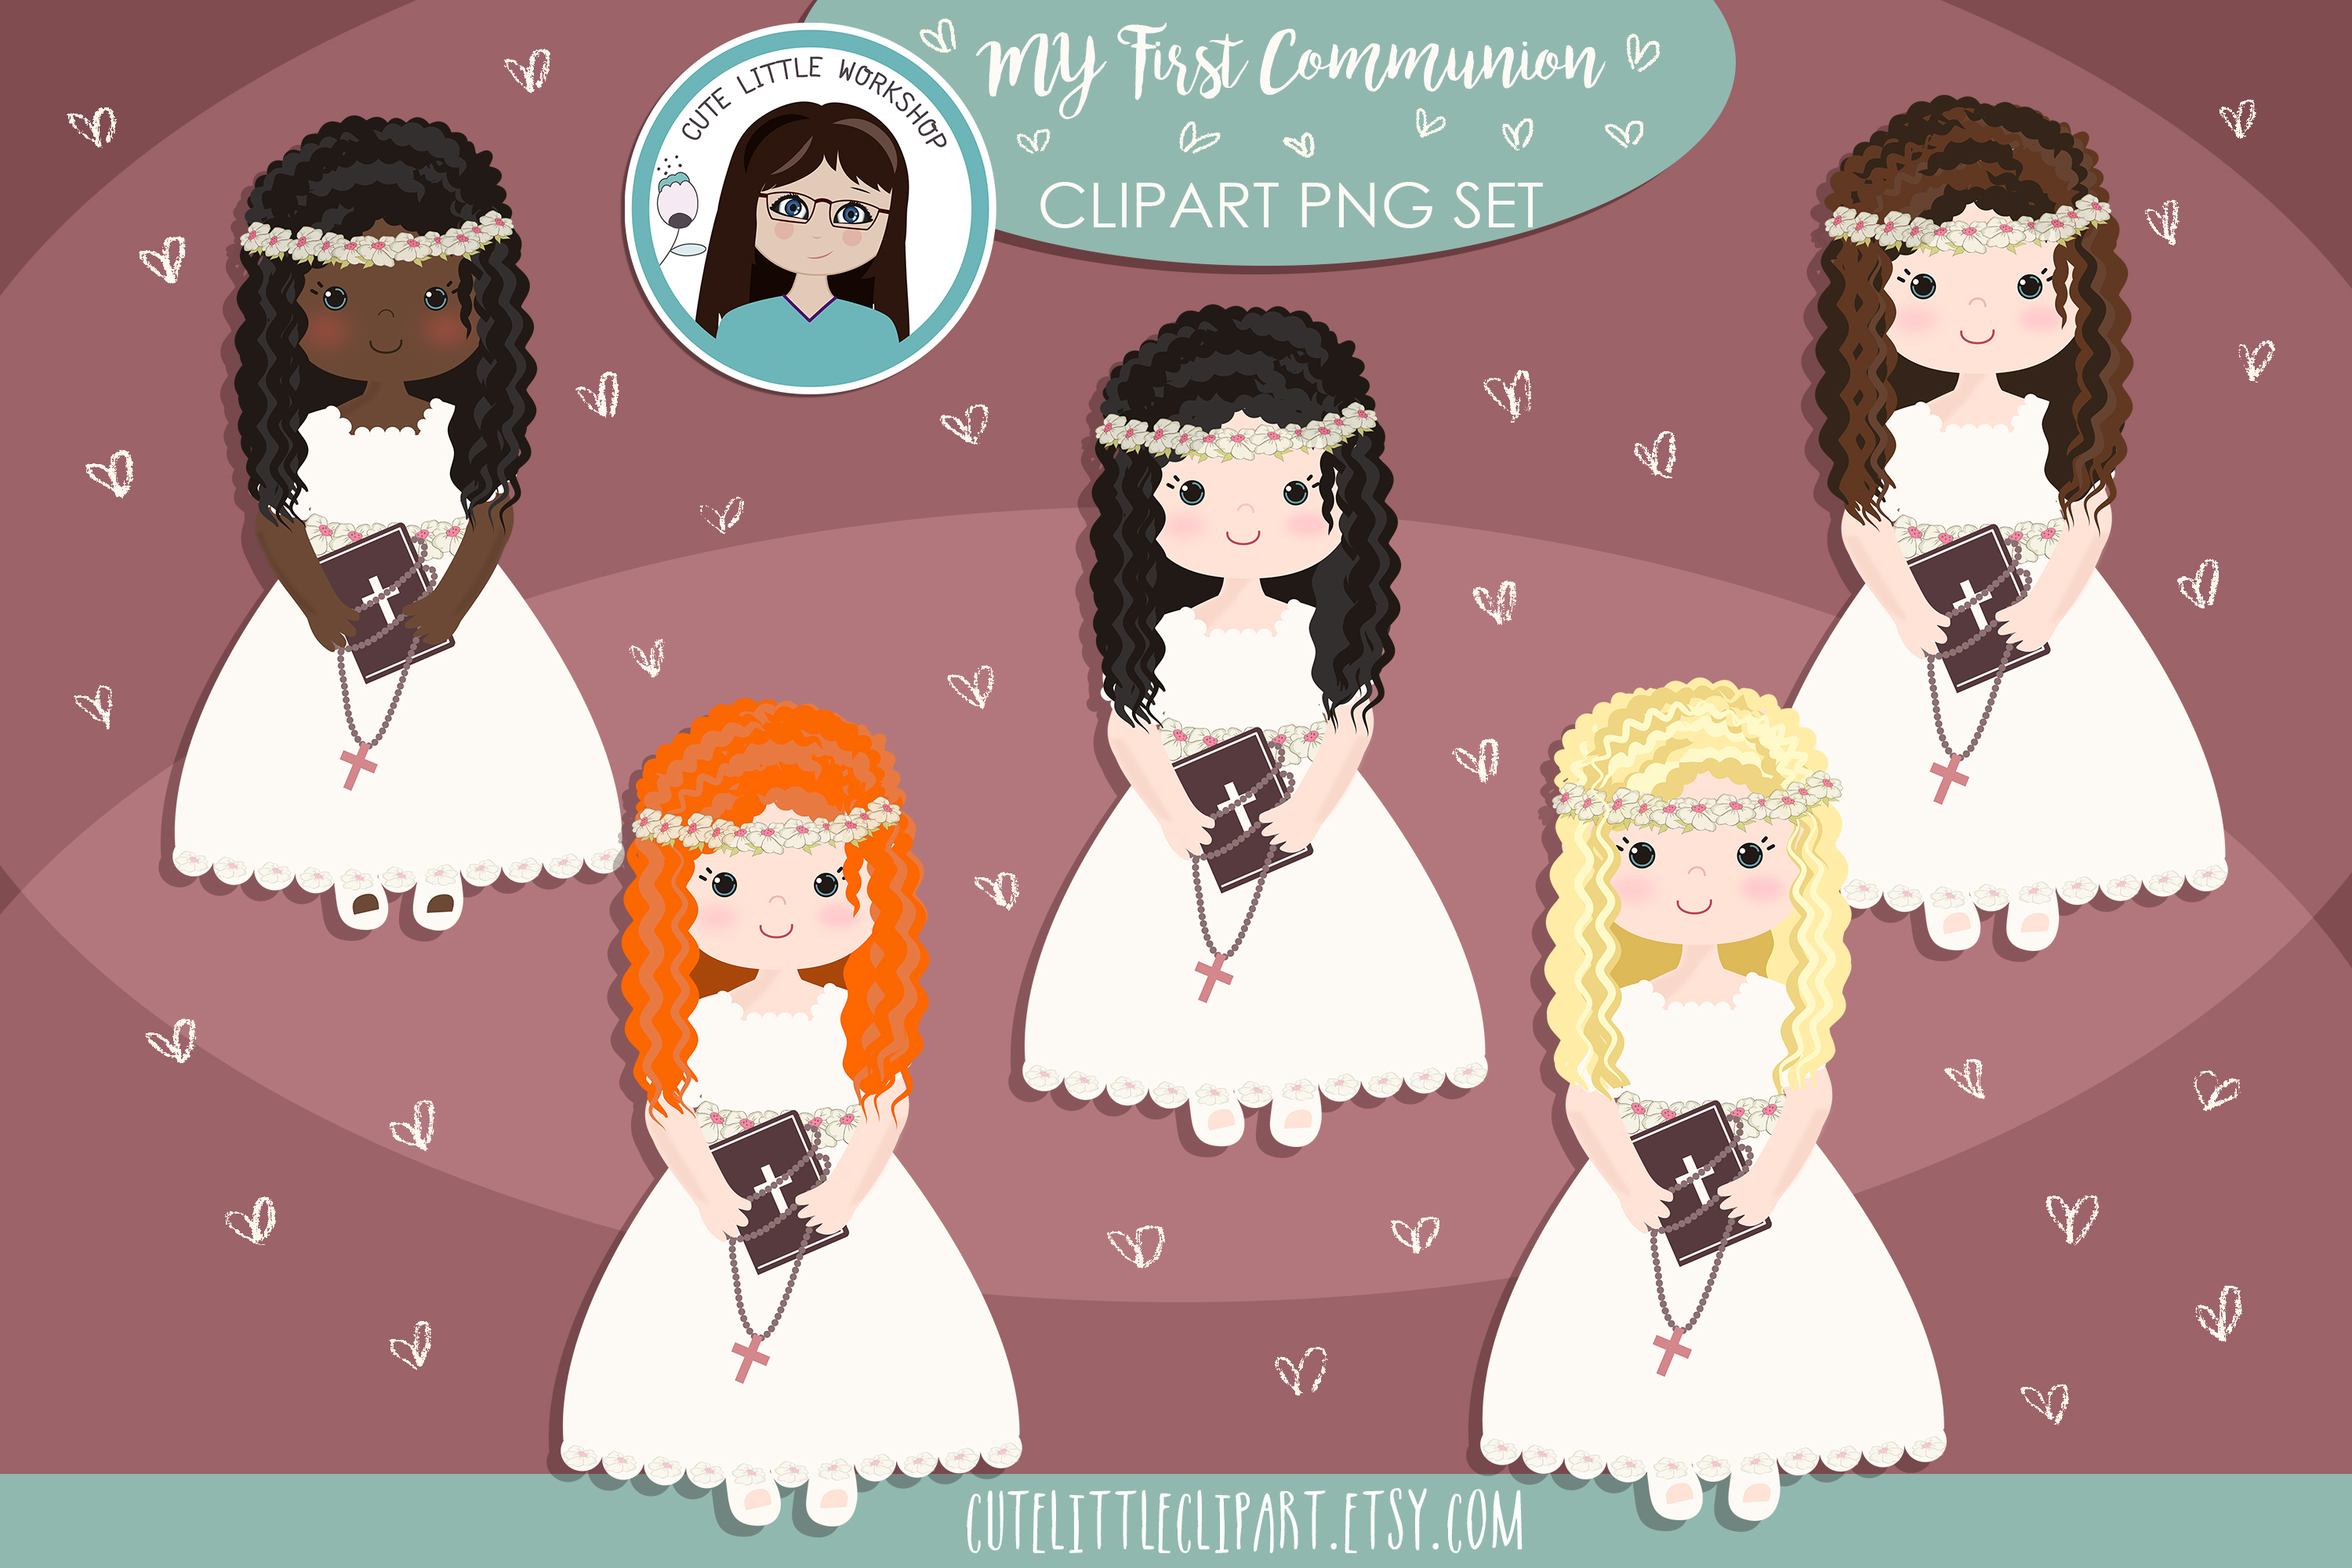 First Communion Cliparts Bundle example image 7